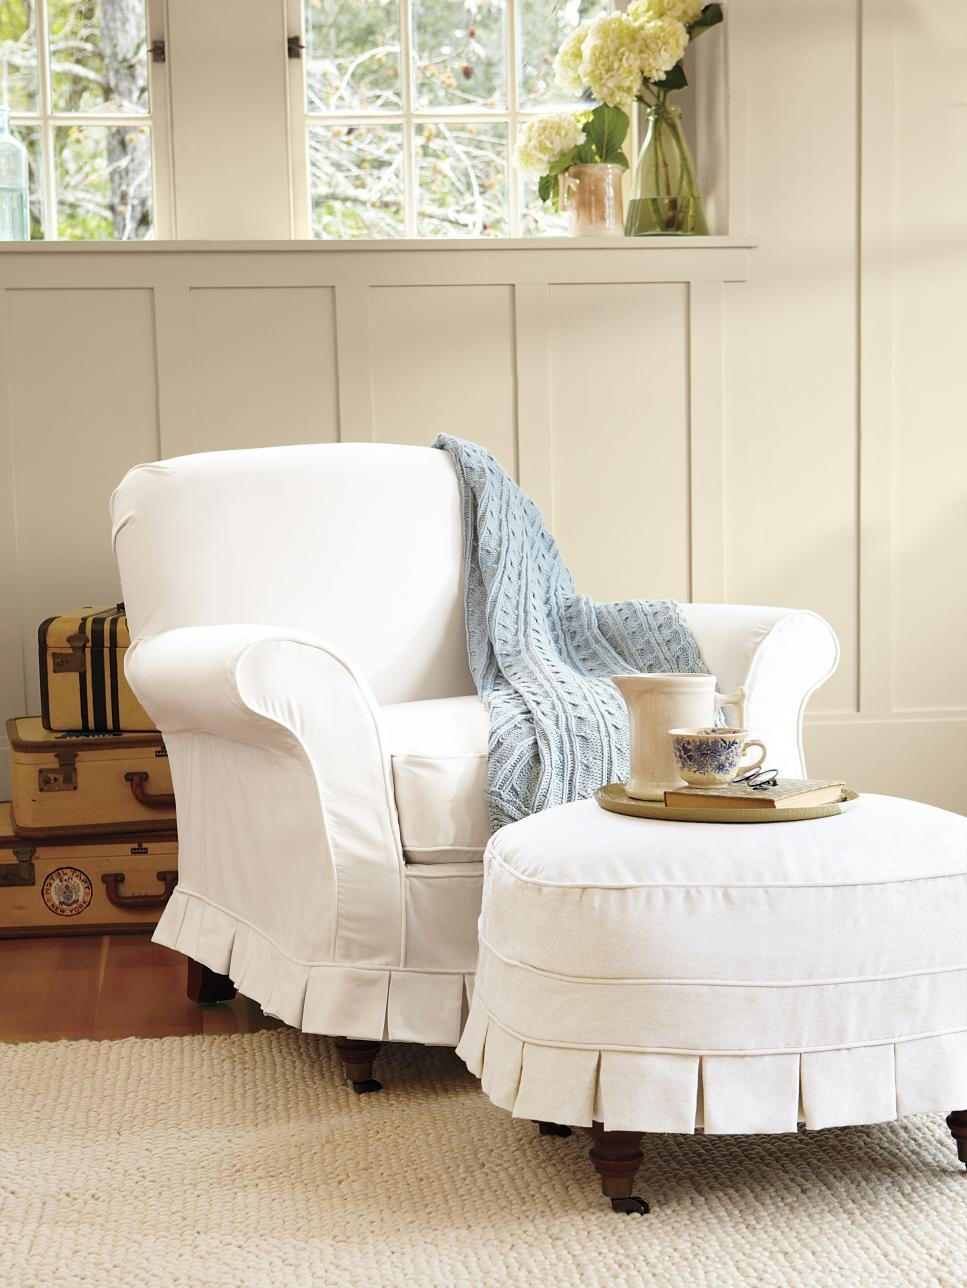 Unbelievable Slipcovers For Living And Dining Rooms | Hgtv In Slipcovers For Chairs And Sofas (Image 20 of 20)